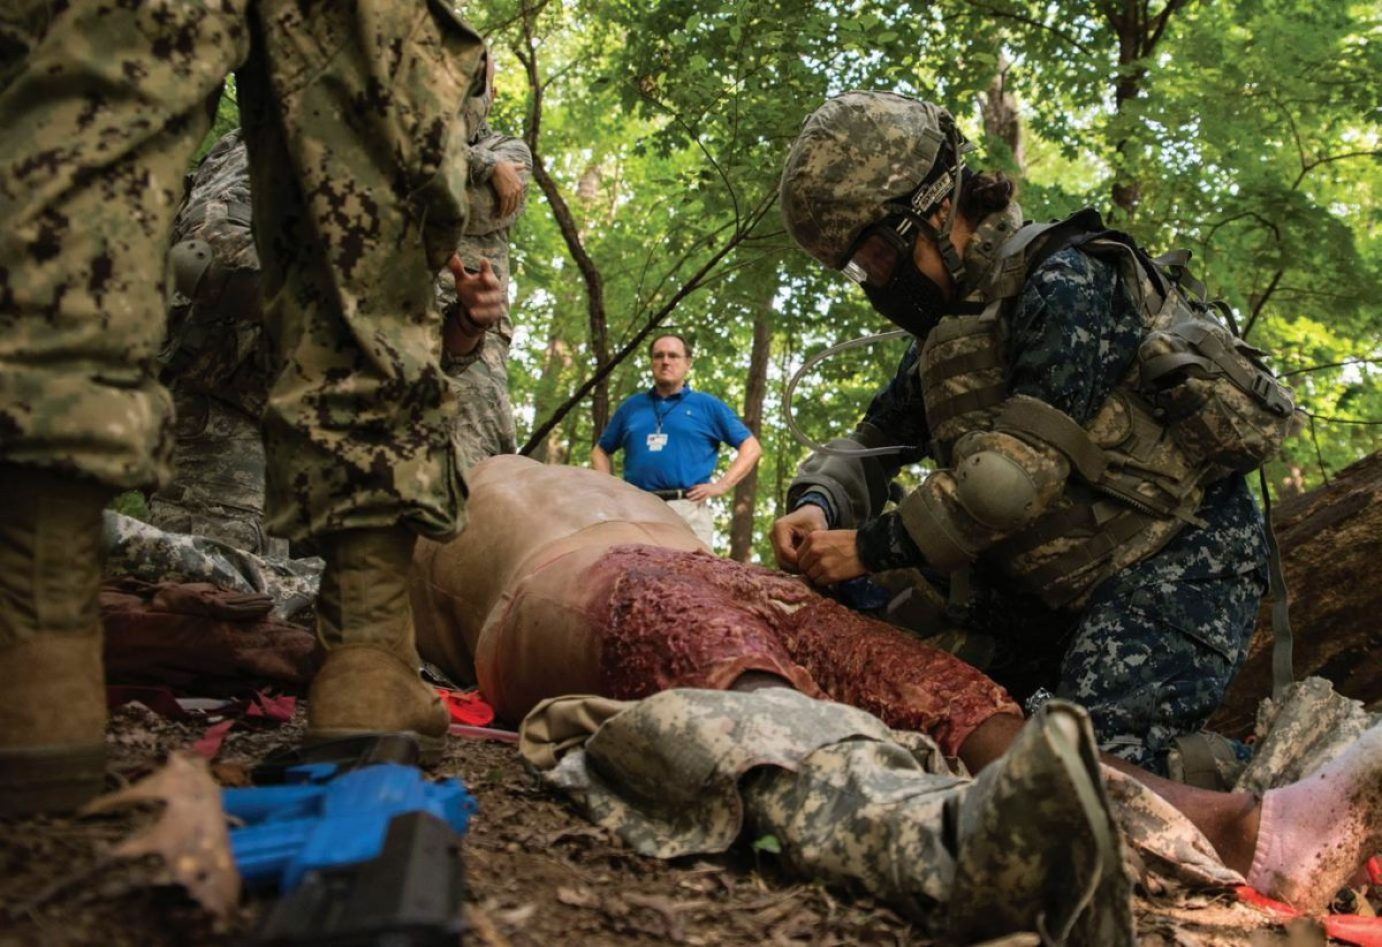 First-year USUHS medical students at the F. Edward Hébert School of Medicine participate in the Advanced Combat Medical Experience (ACME) training exercise at USUHS. ACME is designed to test medical students' knowledge in a simulated combat situation, and volunteer role players wearing latex cut suits that simulate battle injuries allow medical students to apply simulated medical interventions such as hemorrhage control, IV insertions, and tracheostomies. USUHS ensures its graduates can provide care whether in a hospital or on a battlefield.